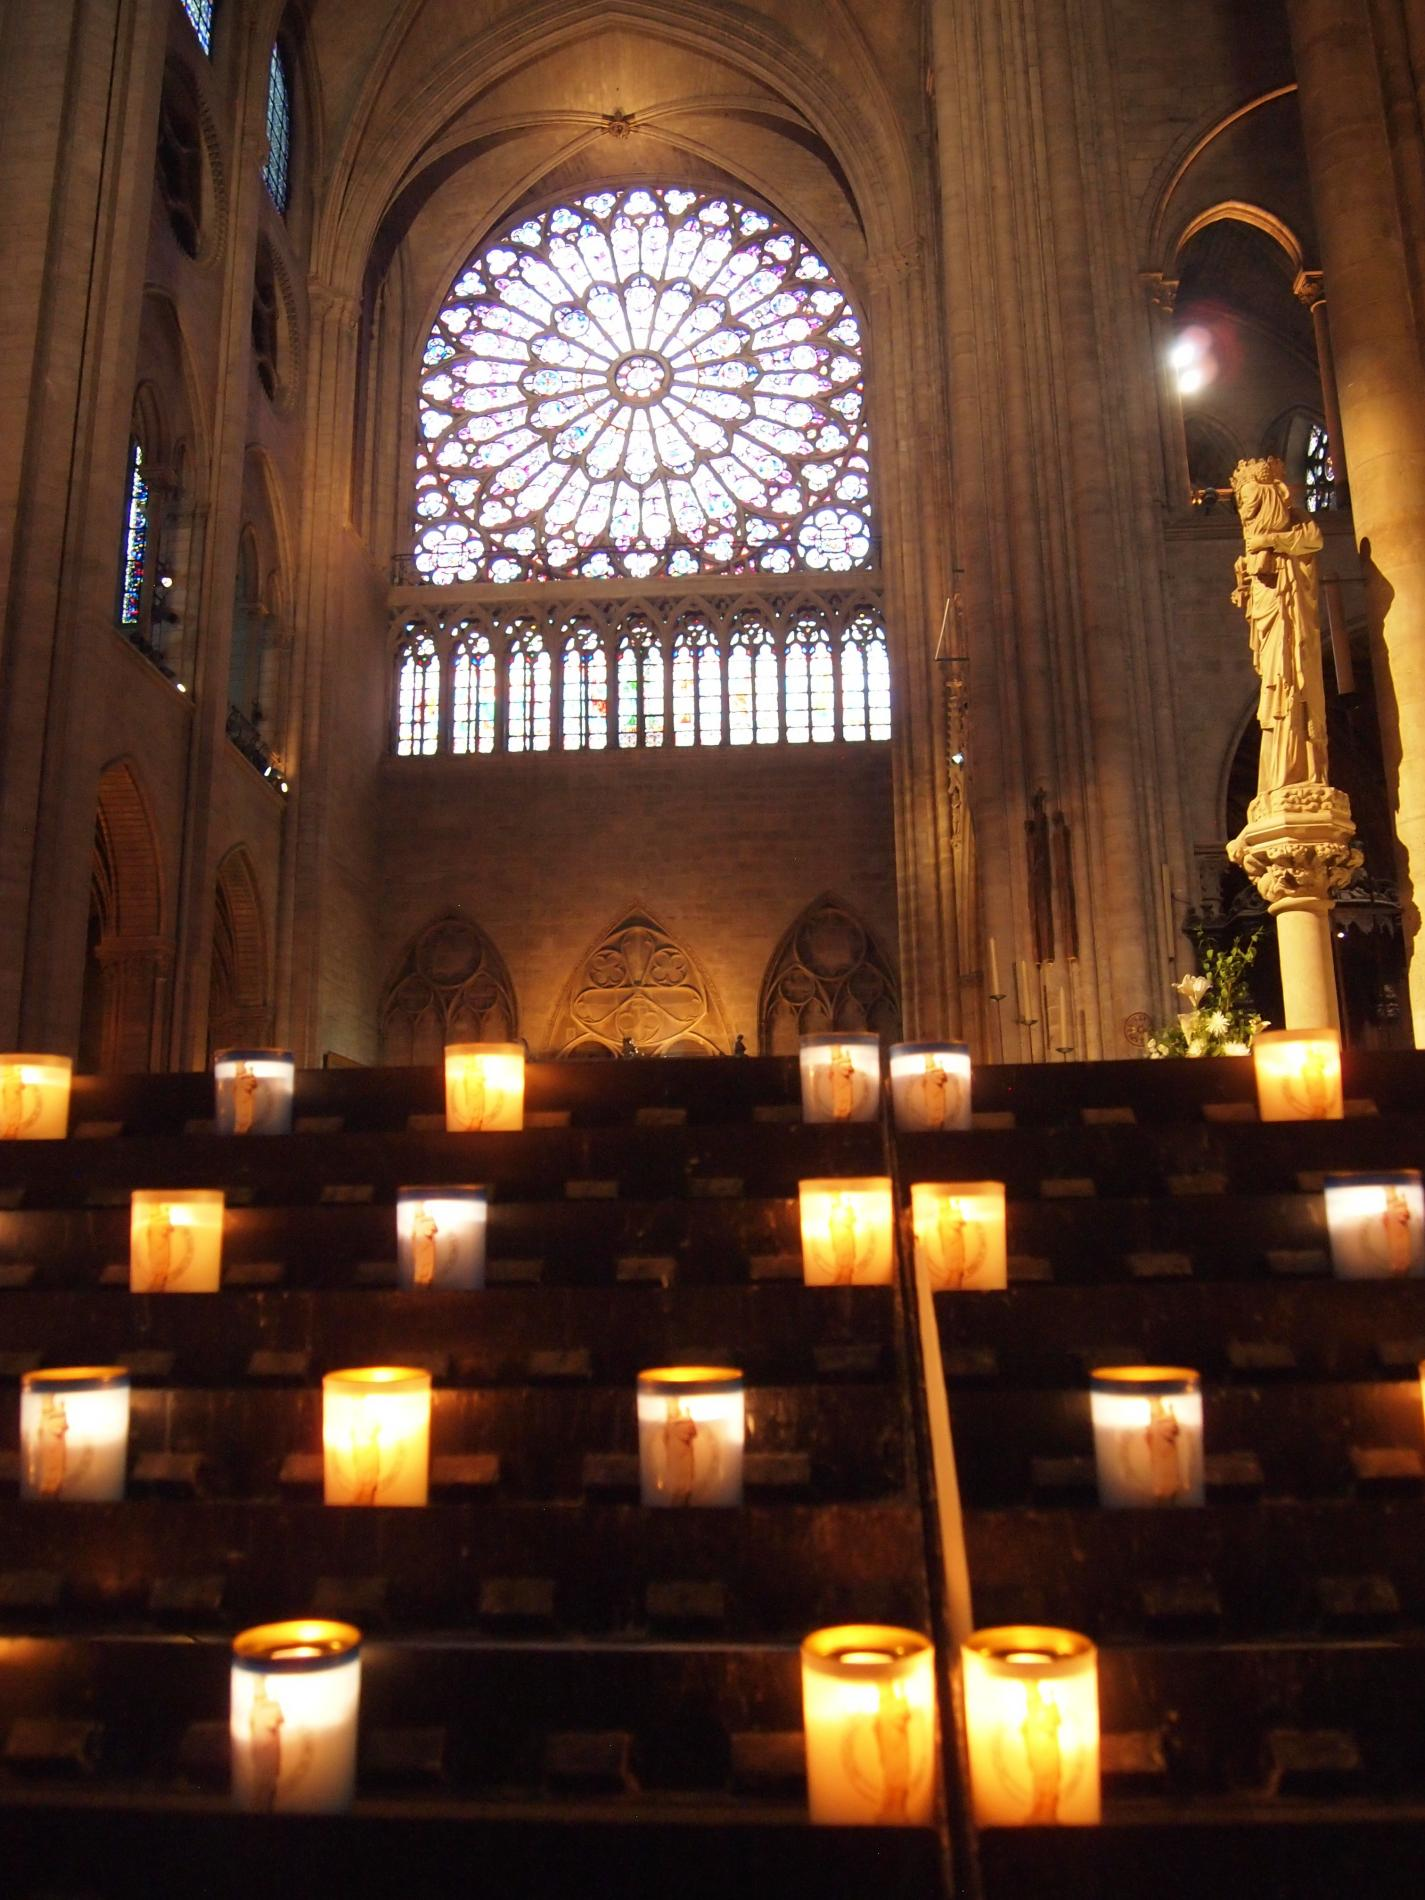 Candles lit in a cathedral